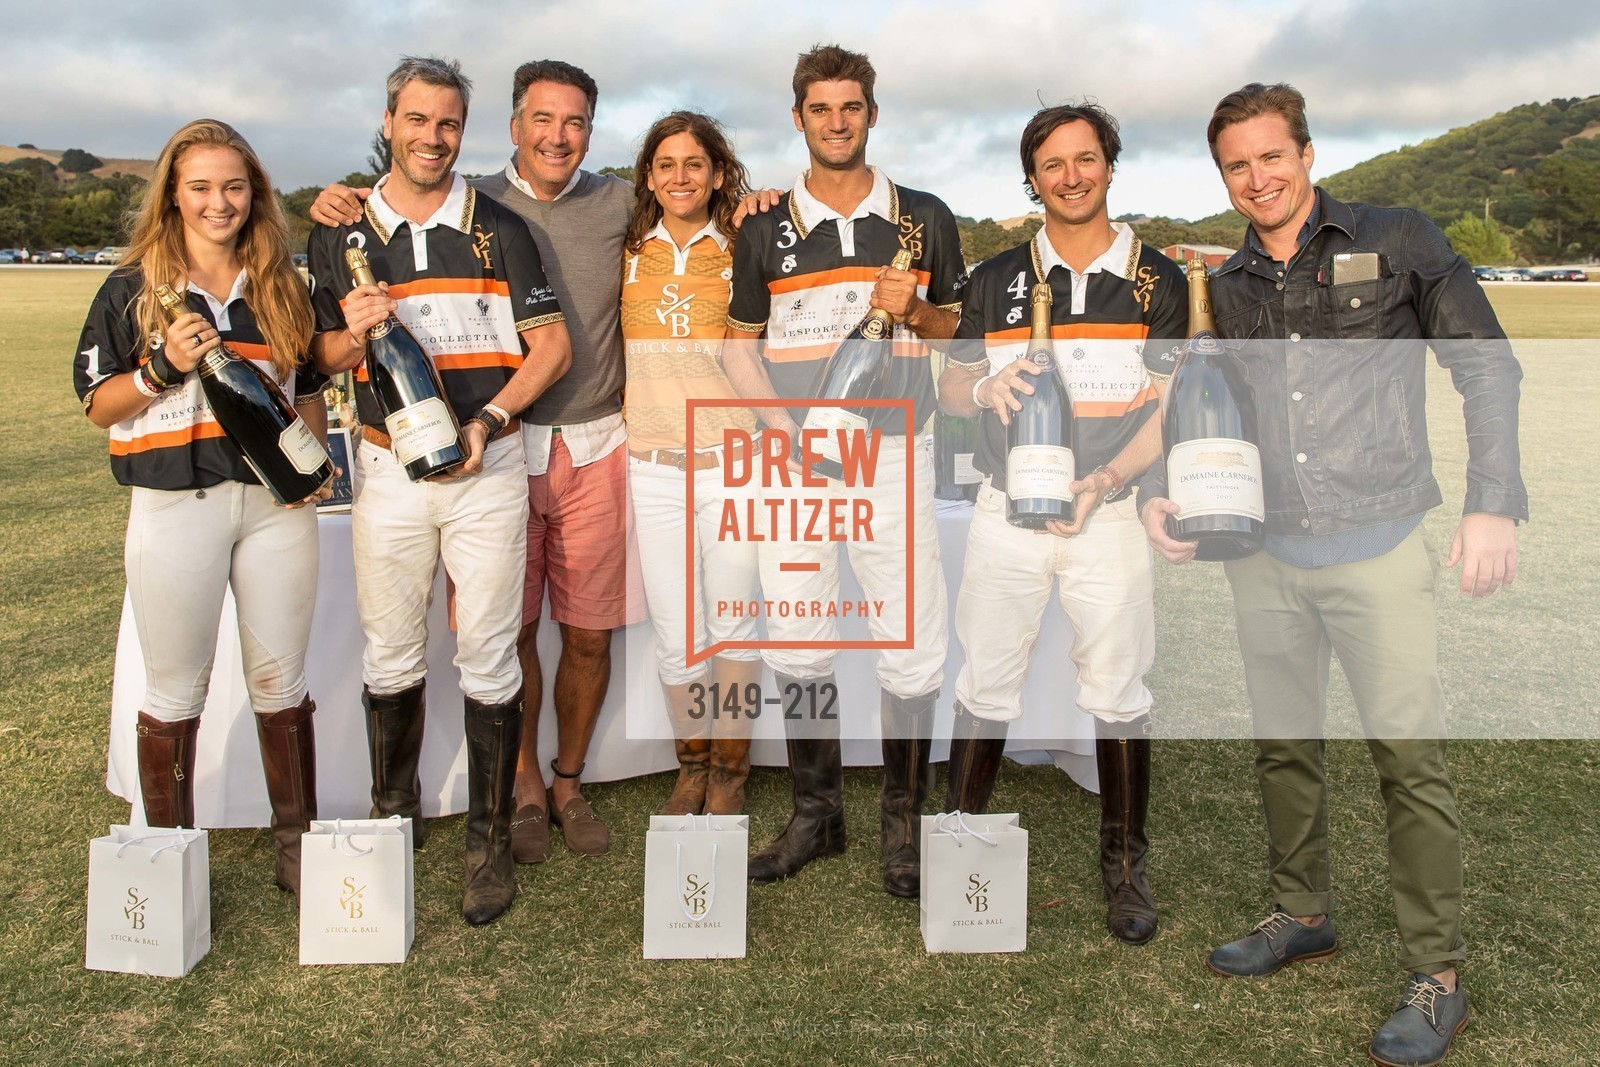 Fiona Bach, Jonathan Haswell, Michael Polenske, Elizabeth Welborn, Ignacio Deltour, John Bickford, Benjamin Rotnicki, Stick & Ball Oyster Cup Polo Tournament, Cerro Pampa Polo Club, July 25th, 2015,Drew Altizer, Drew Altizer Photography, full-service agency, private events, San Francisco photographer, photographer california